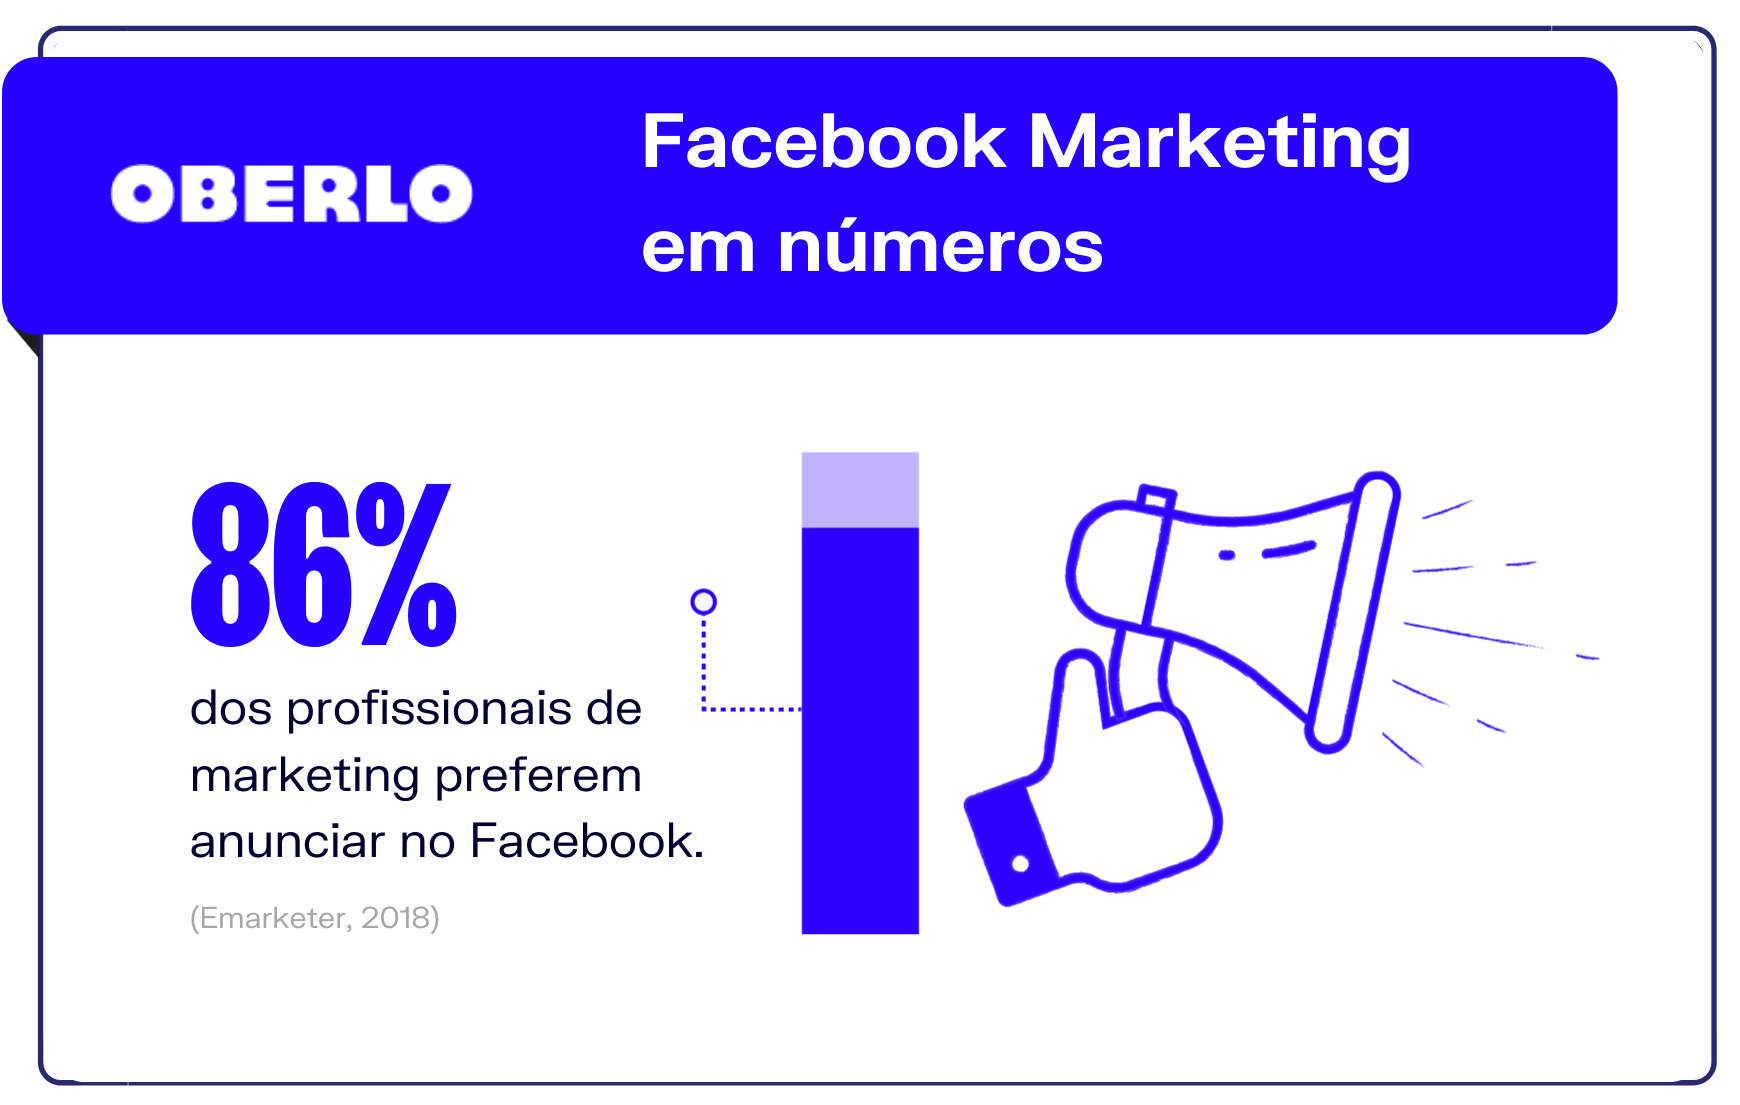 Facebook Marketing em números